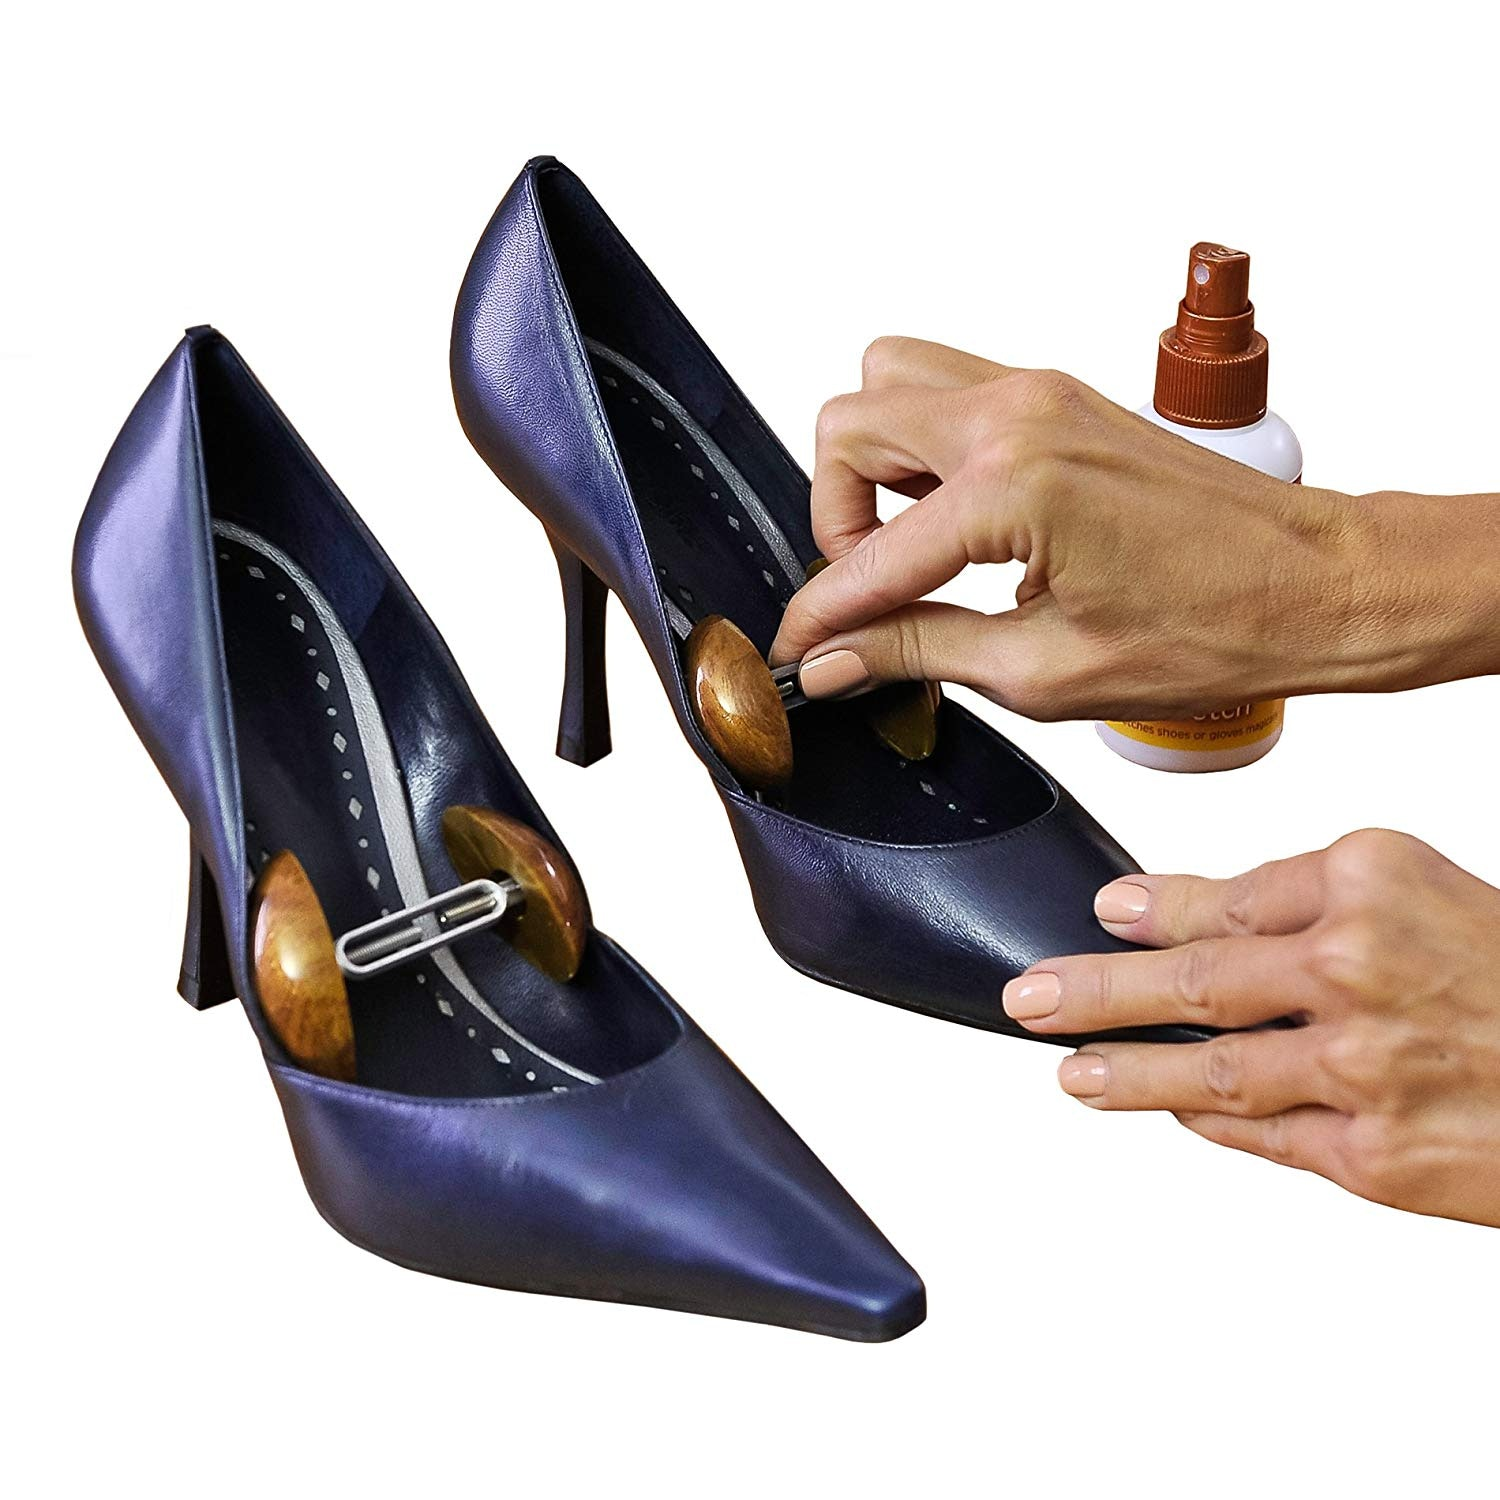 Stretcher Ball and Ring Shoe Stretcher by Stretcher